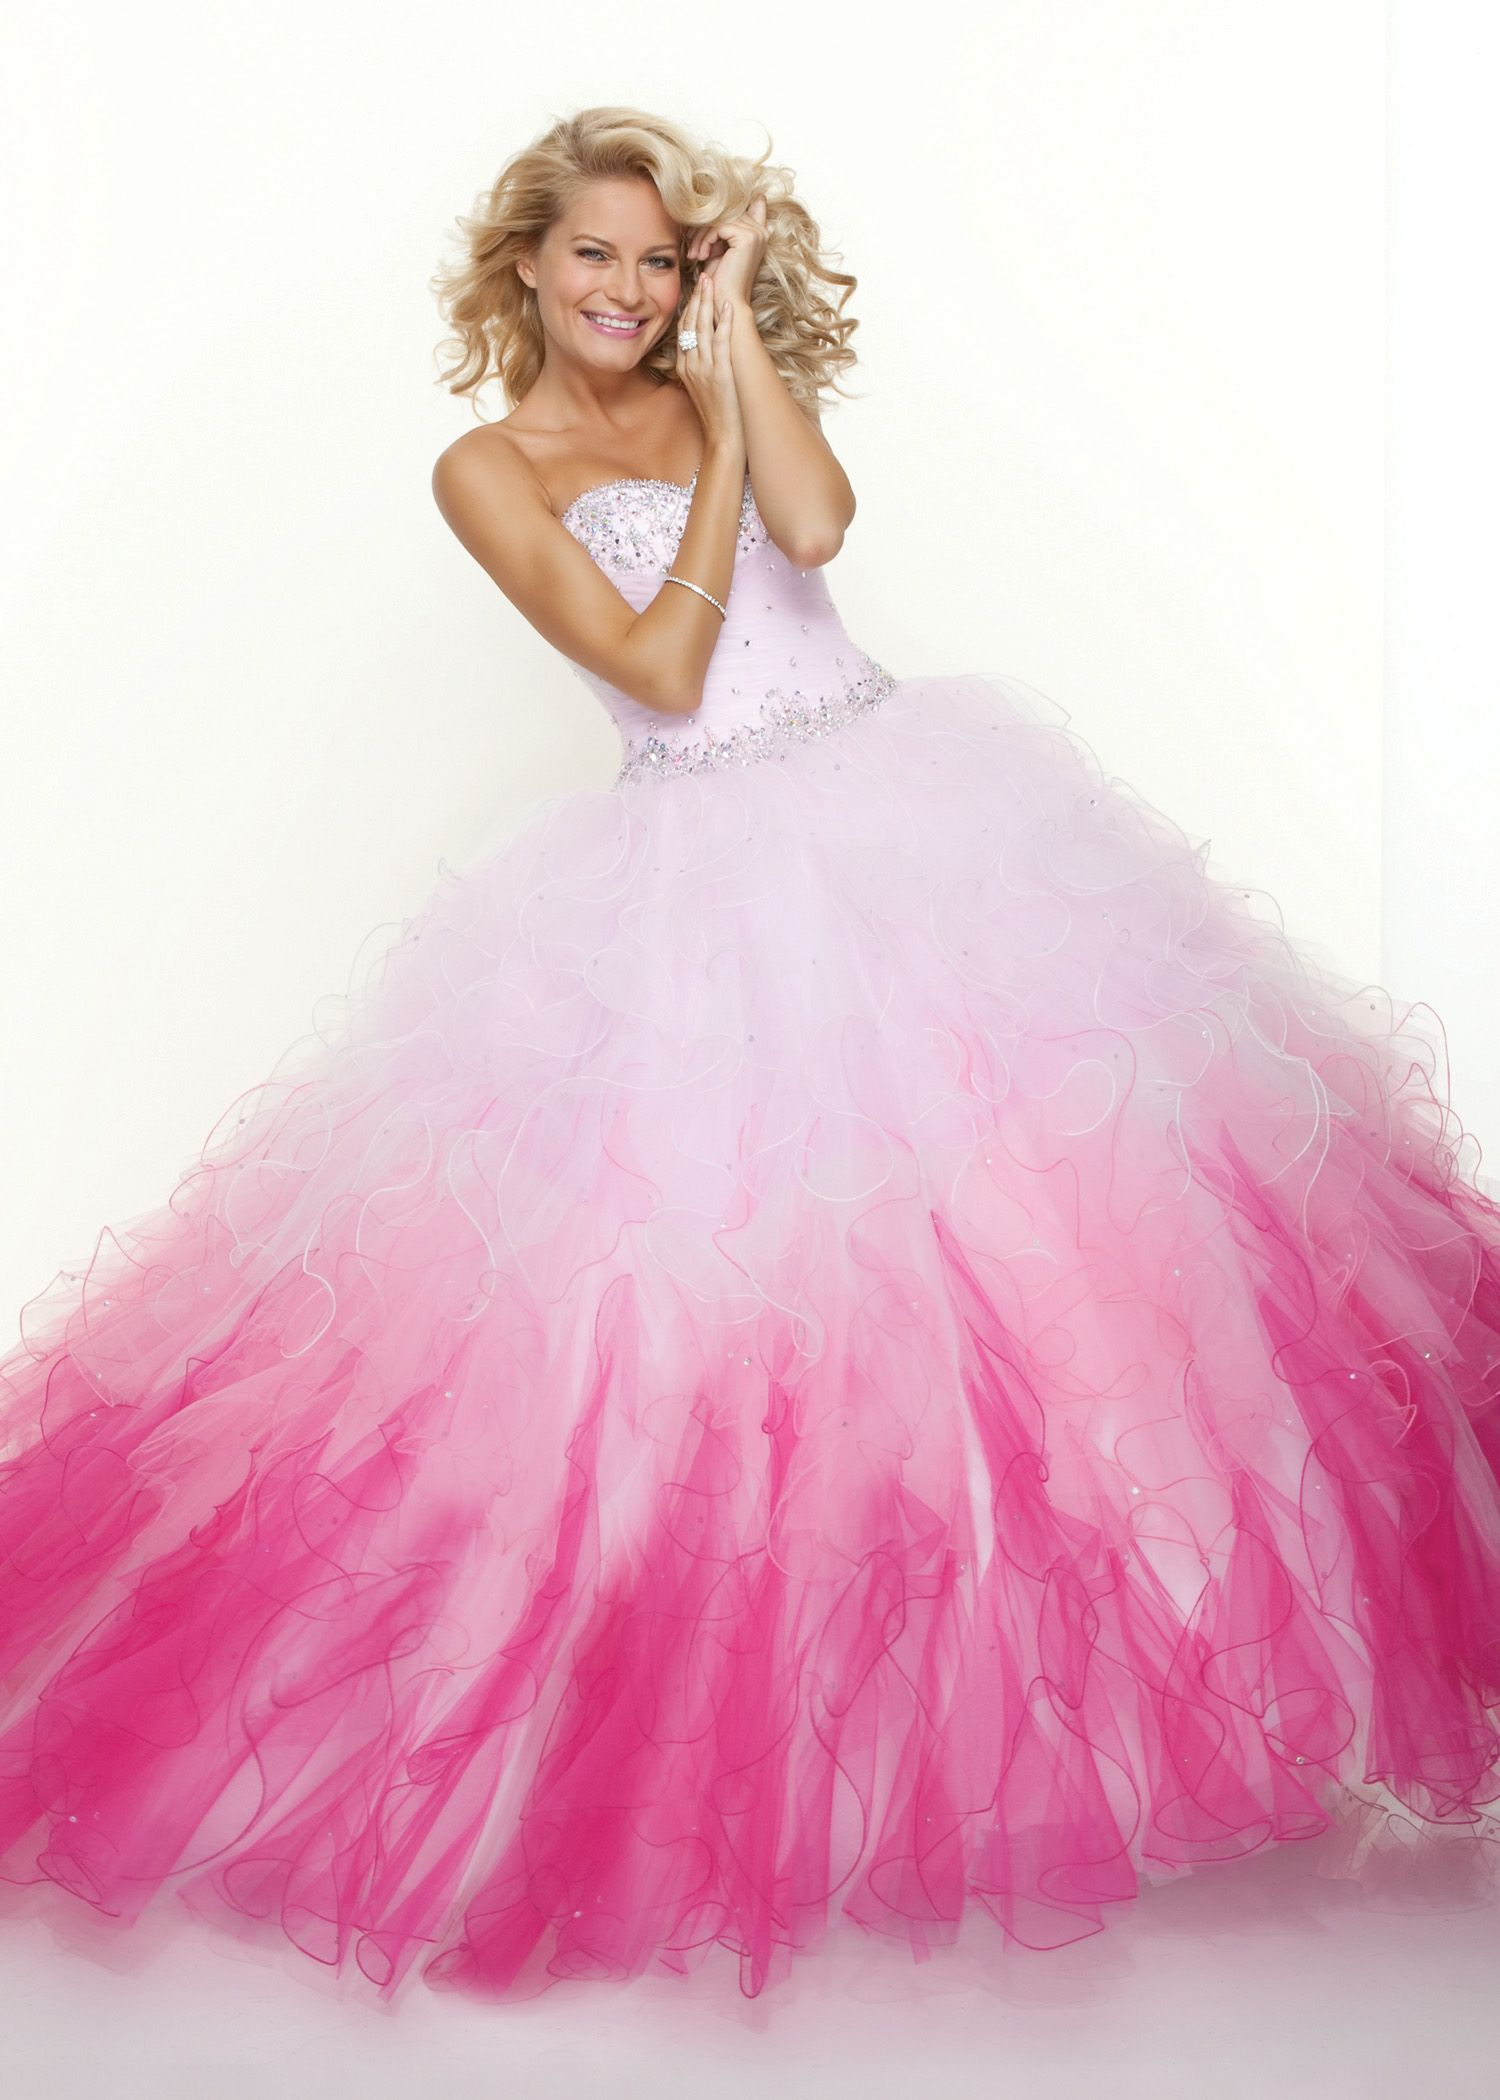 Shop Now Paparazzi by Mori Lee 91001cosmopolitan pink ball gown prom ...